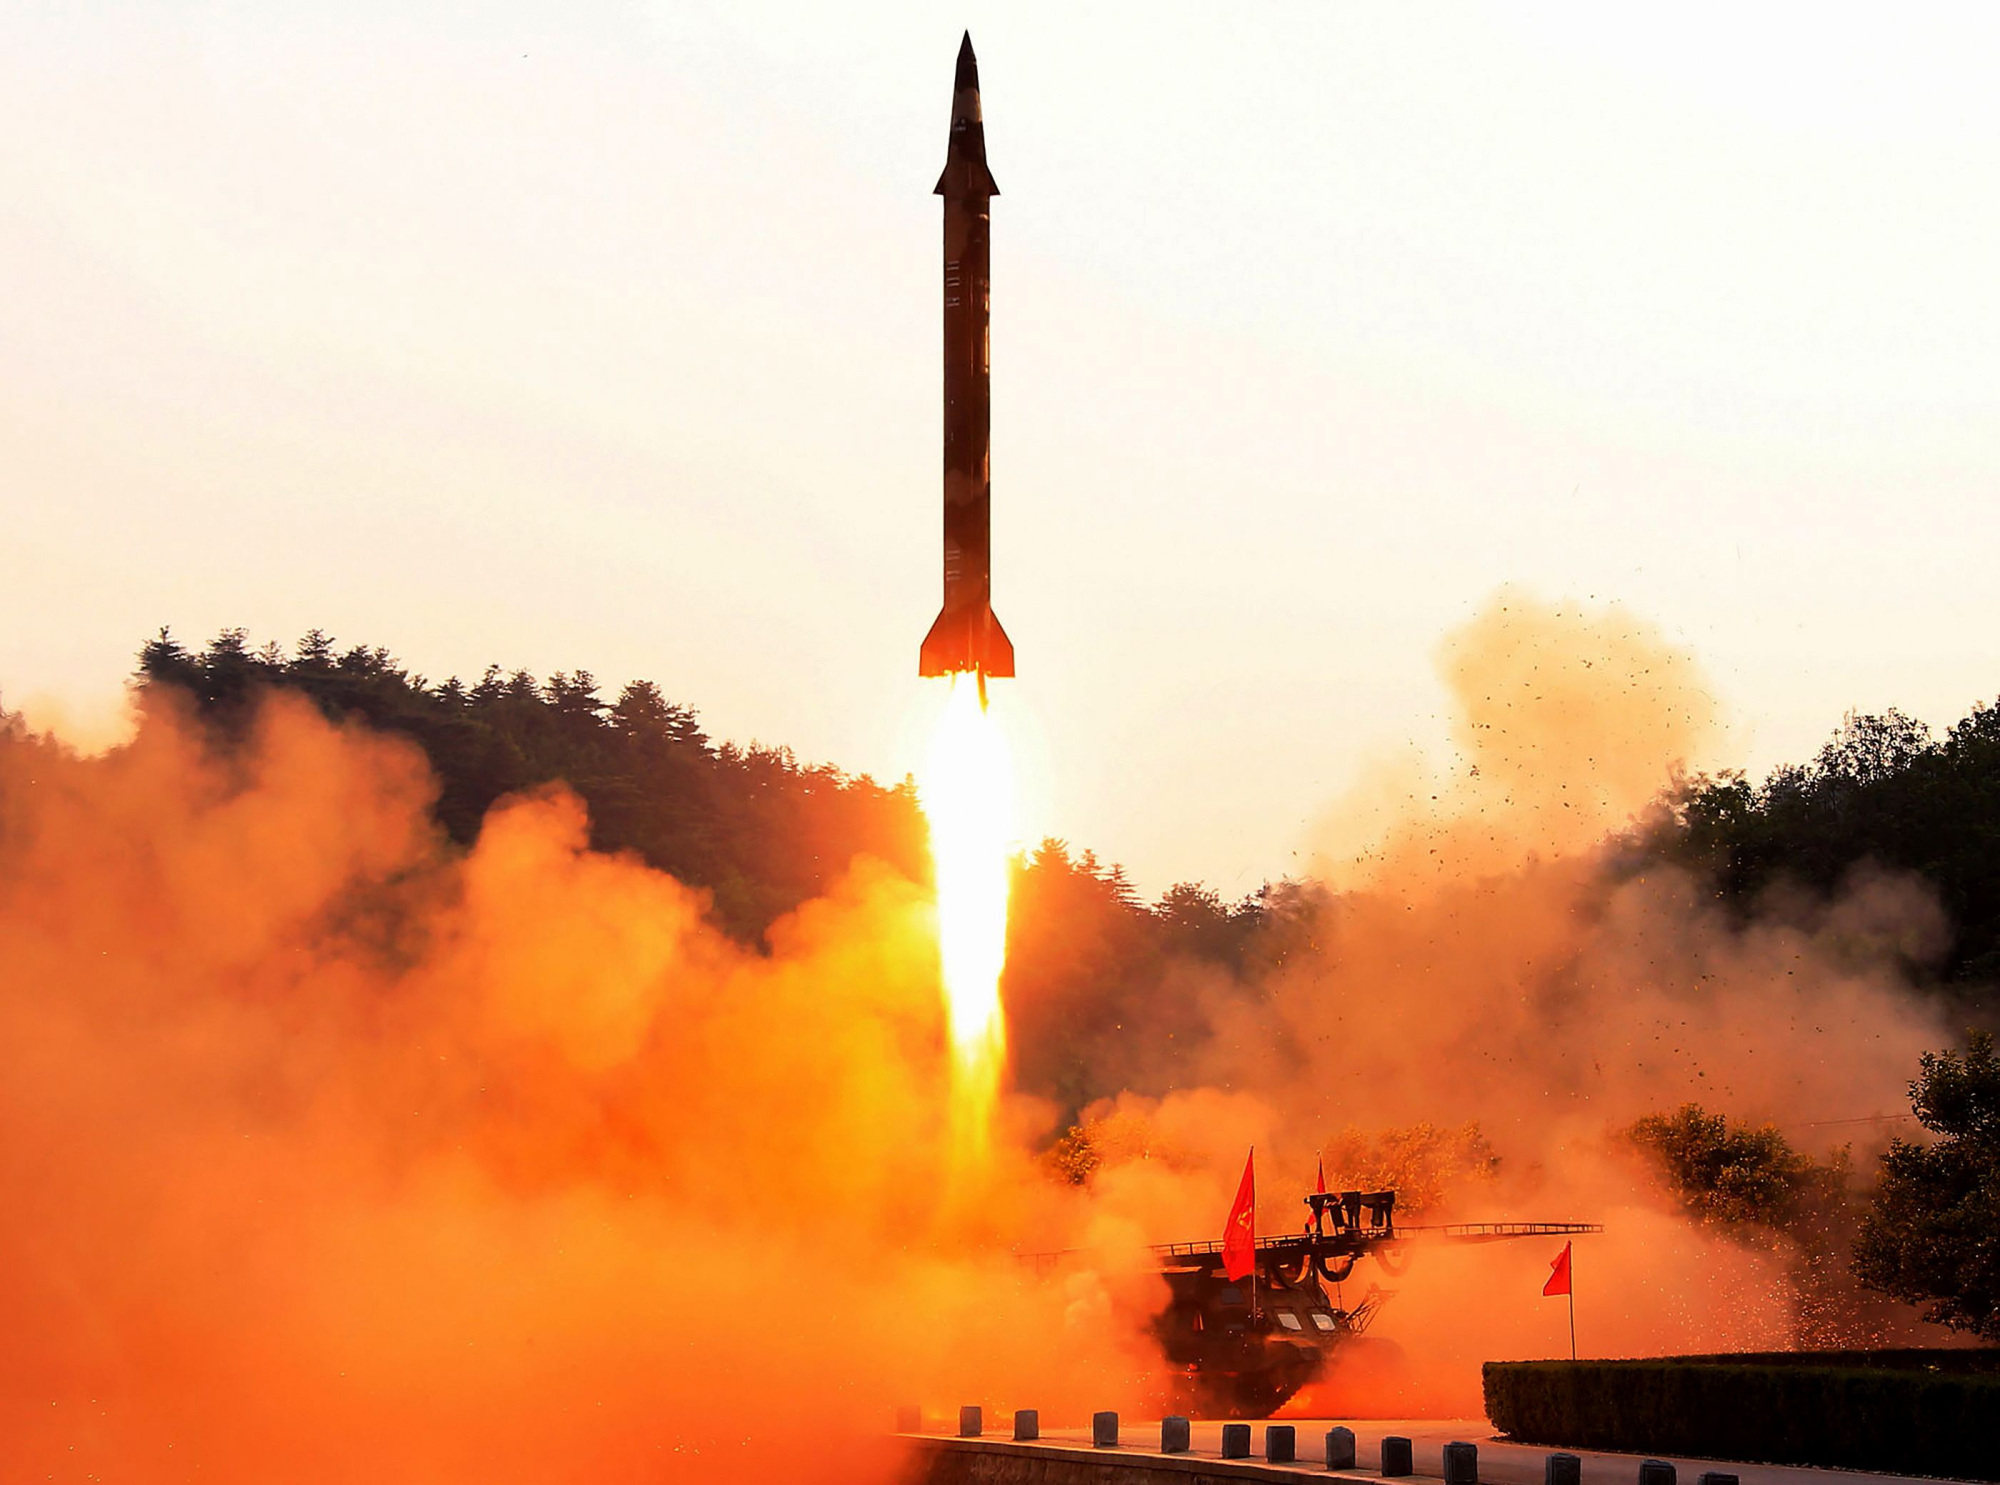 A North Korean ballistic missile is test-fired at an undisclosed location in this undated photo released in May last year. | KCNA VIA KNS / VIA AFP-JIJI